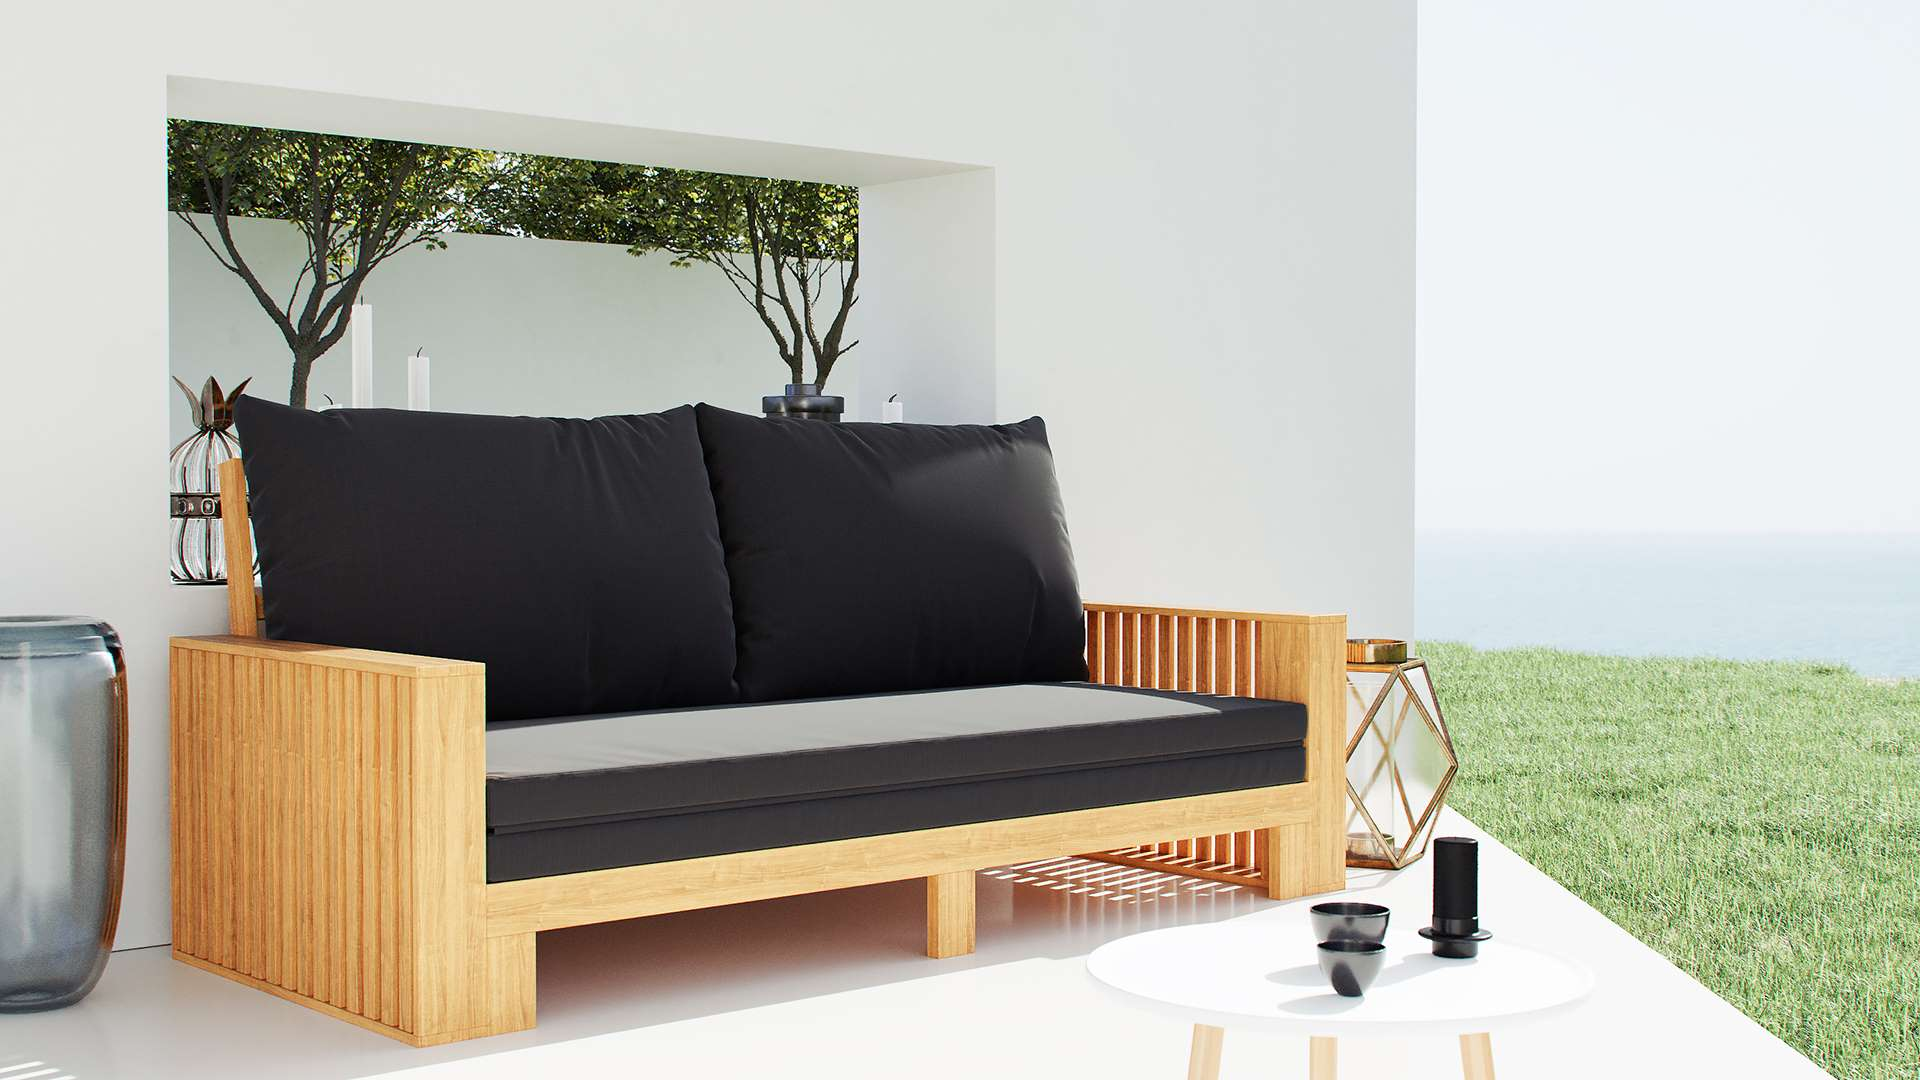 Daybed Holz Daybed Holz Daybed M Bel With Daybed Holz Great Daybed